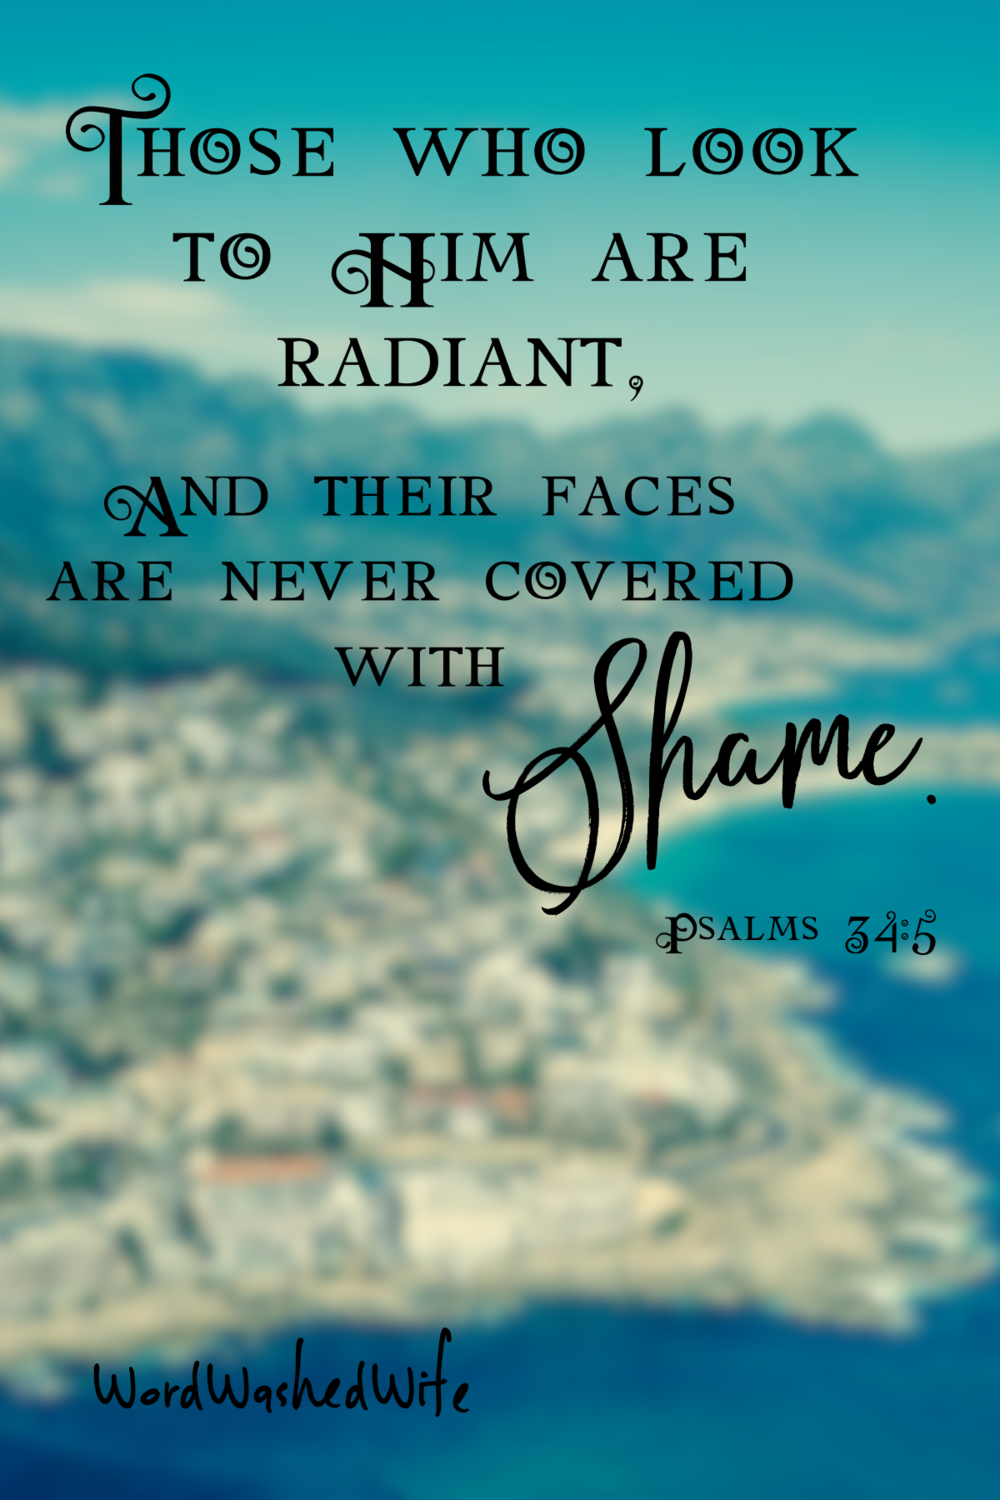 psalms 34 5.PNG